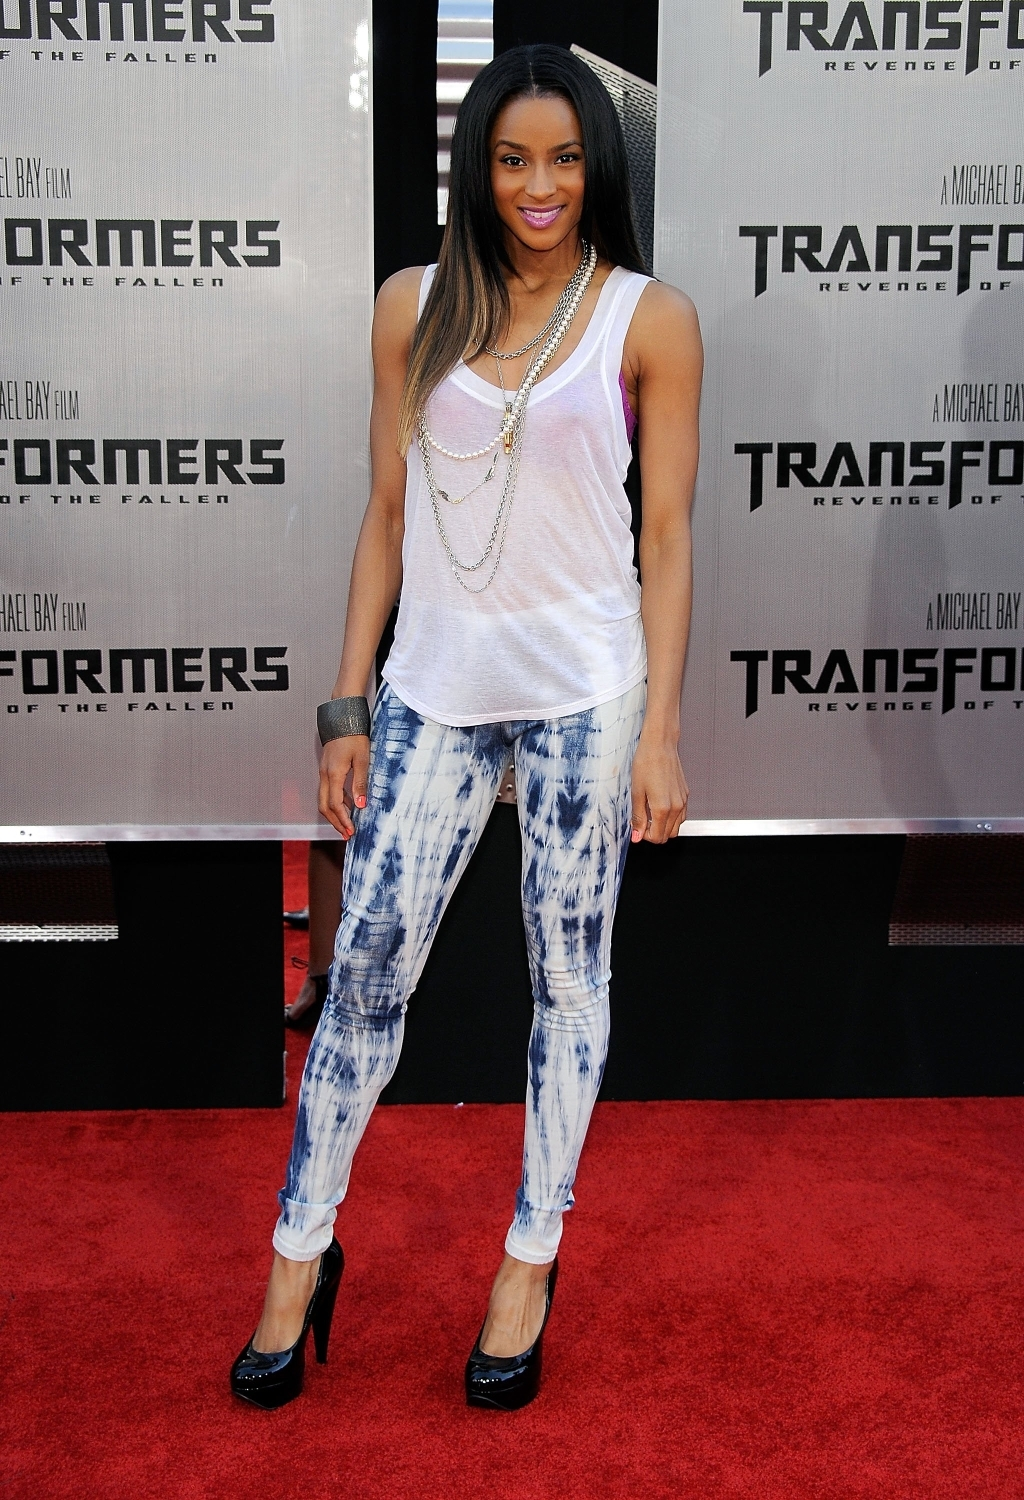 ciara , clothing, cloting, h&m, jeans